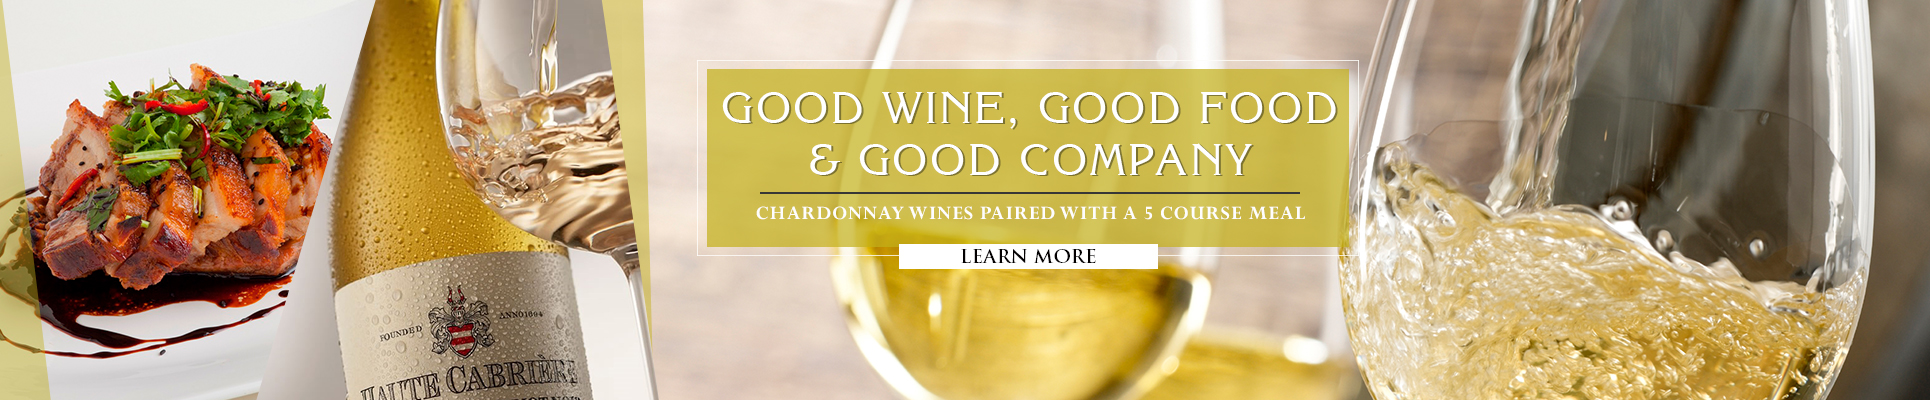 CHARDONNAY WINES PAIRED WITH A 5 COURSE MEAL AT MISTY HILLS COUNTRY HOTEL MULDERSDRIFT